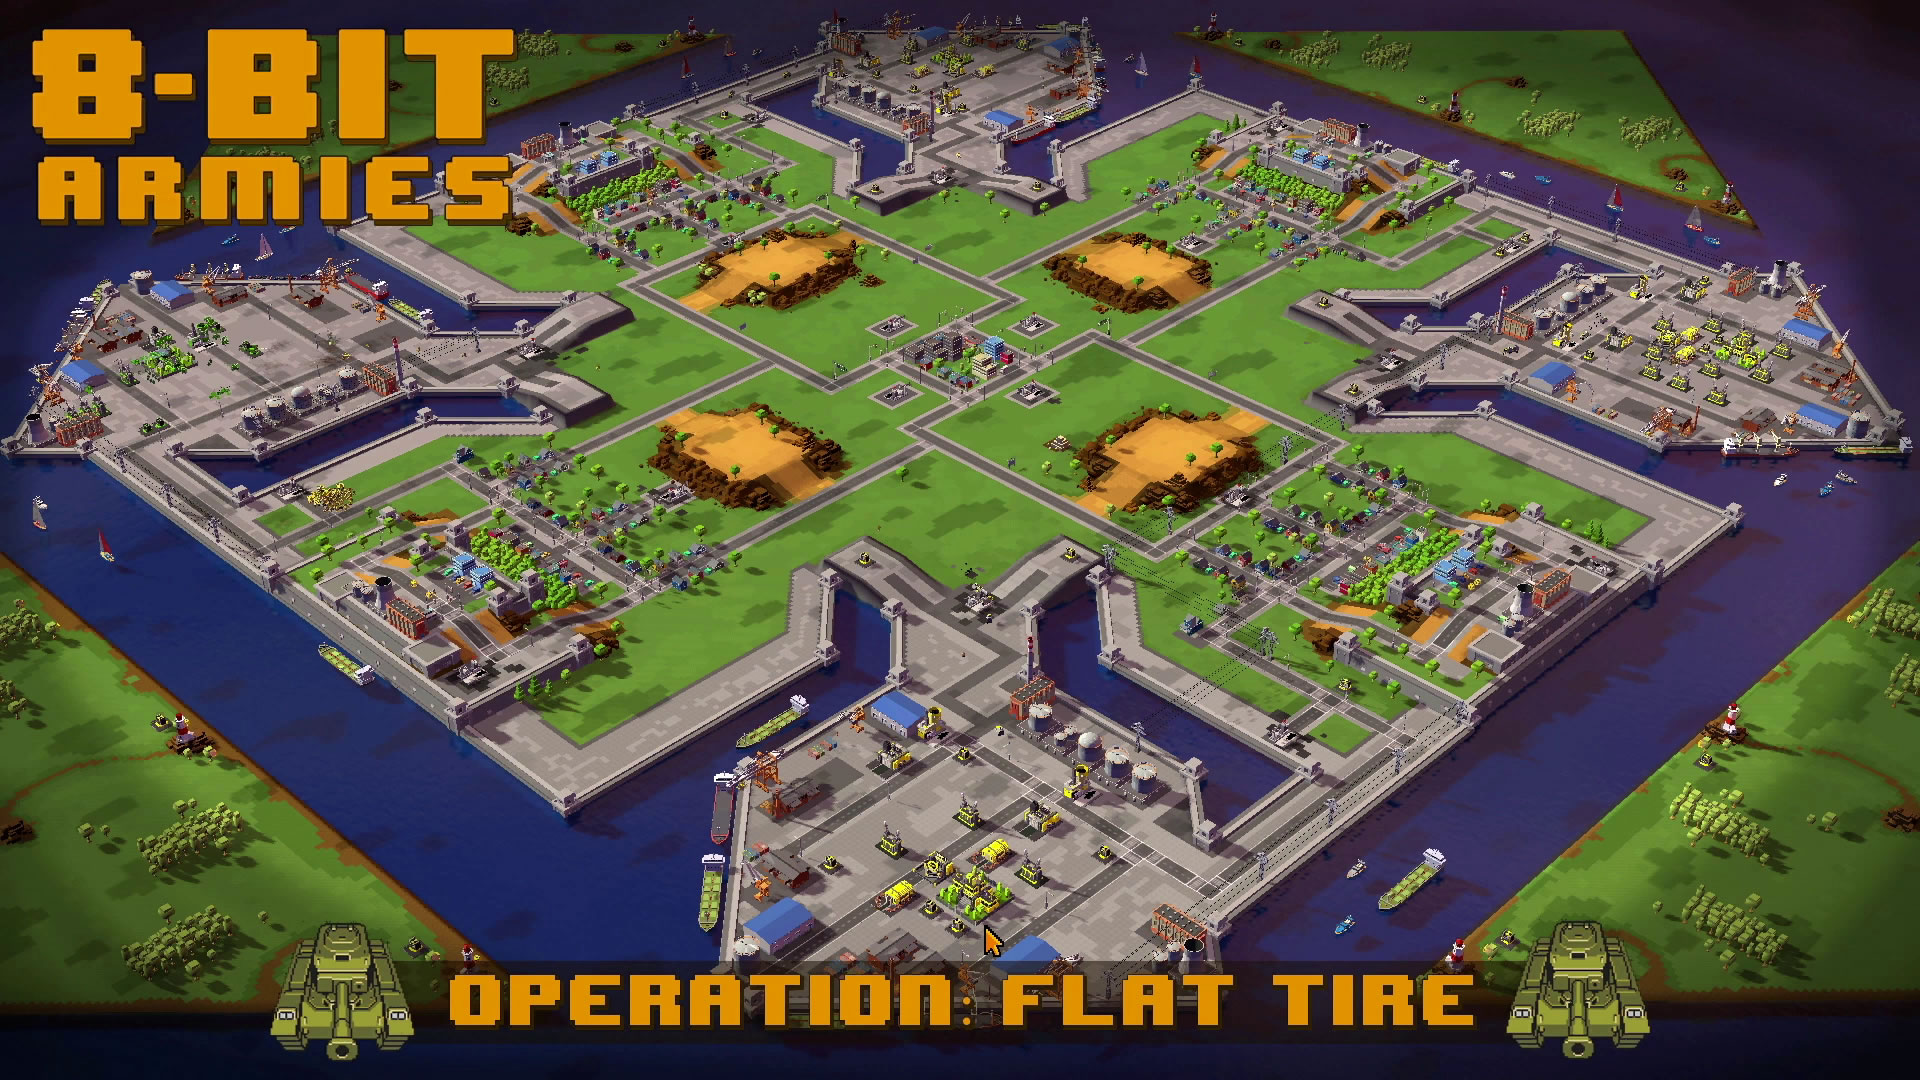 8-Bit Armies – Let's Play: BETA Singleplayer Mission 4 – FLAT TIRE